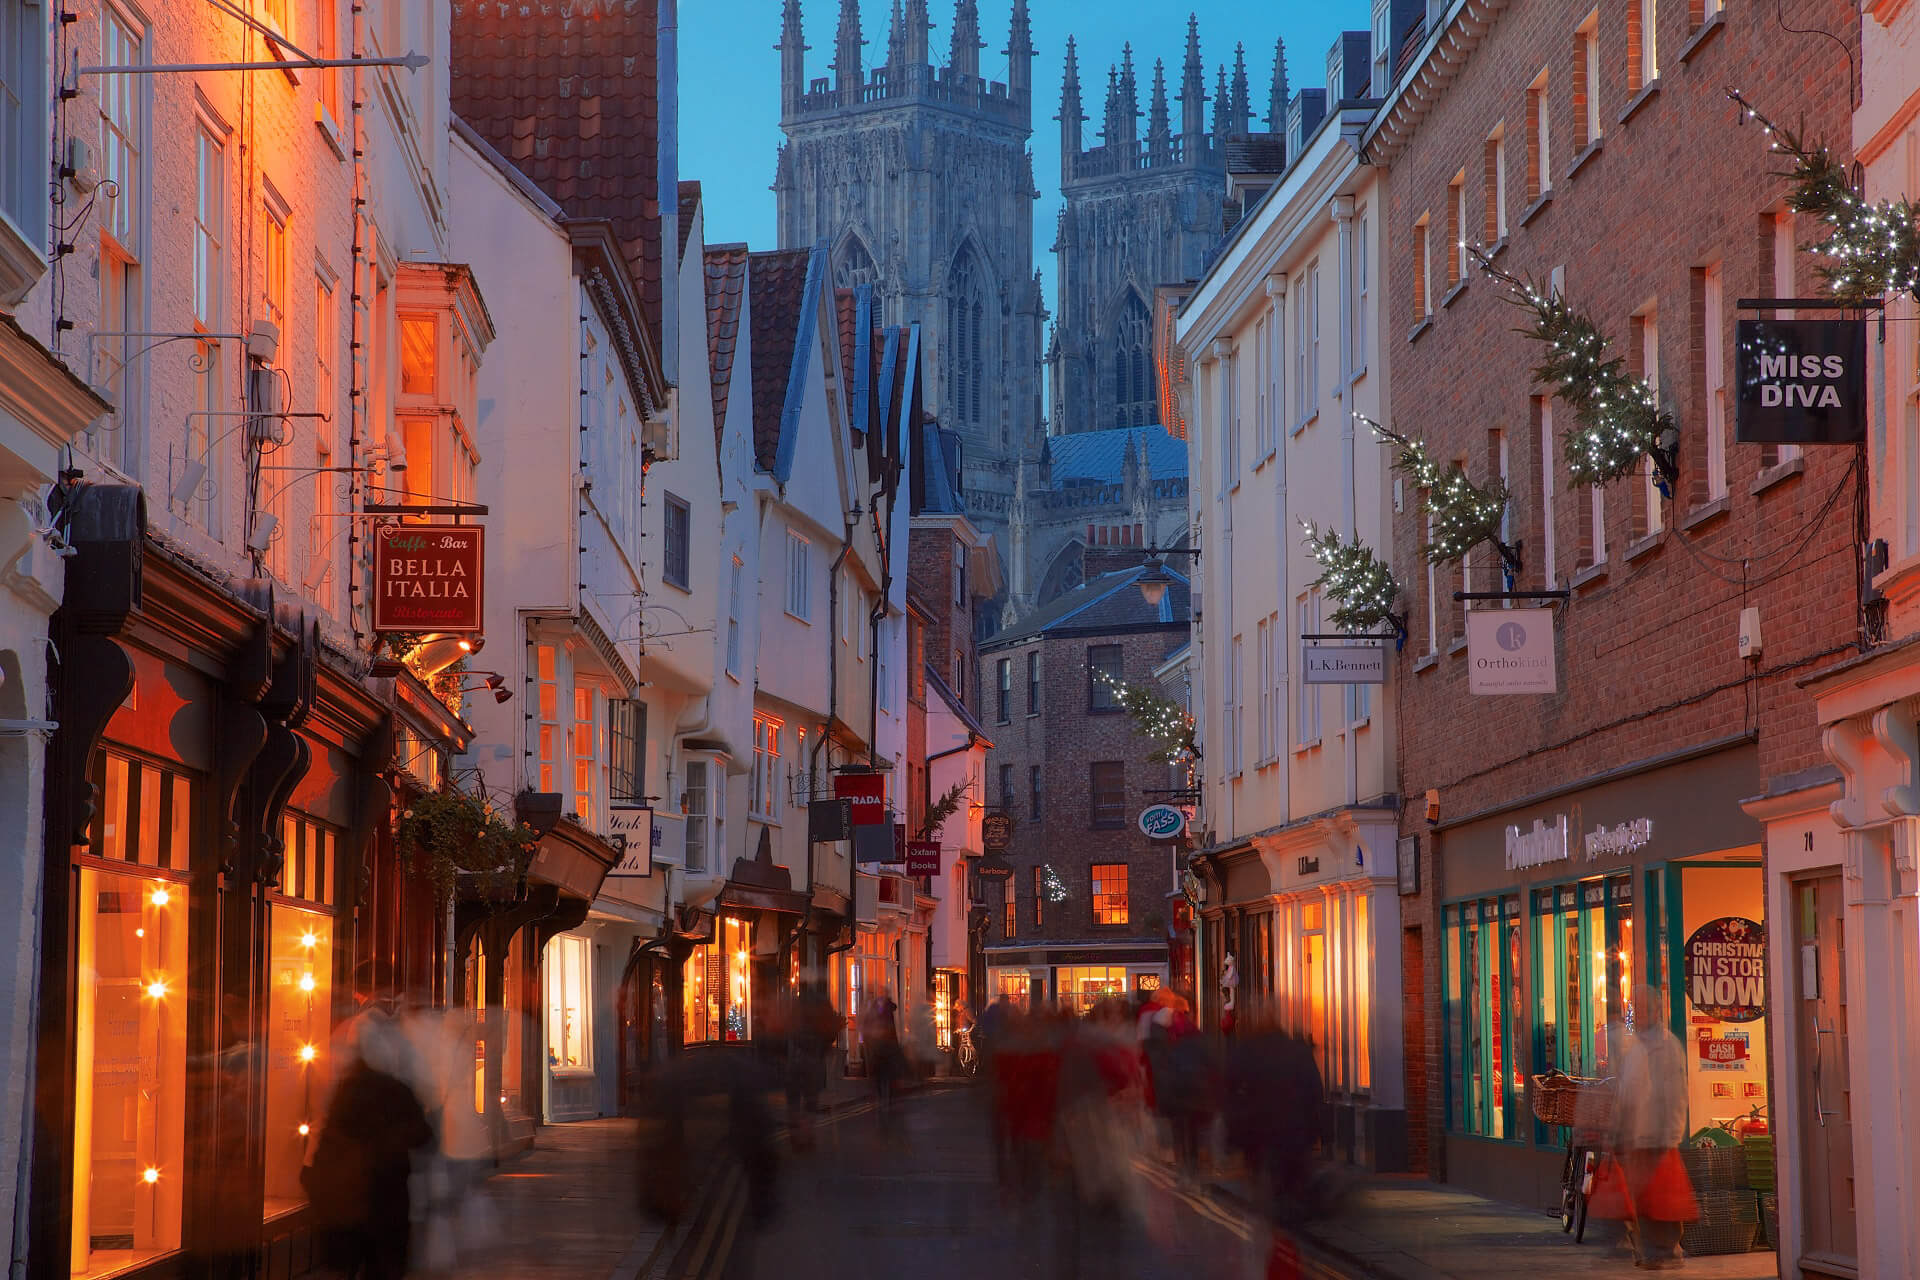 York, UK - A City Where The Tourist Season Lasts All Year Round